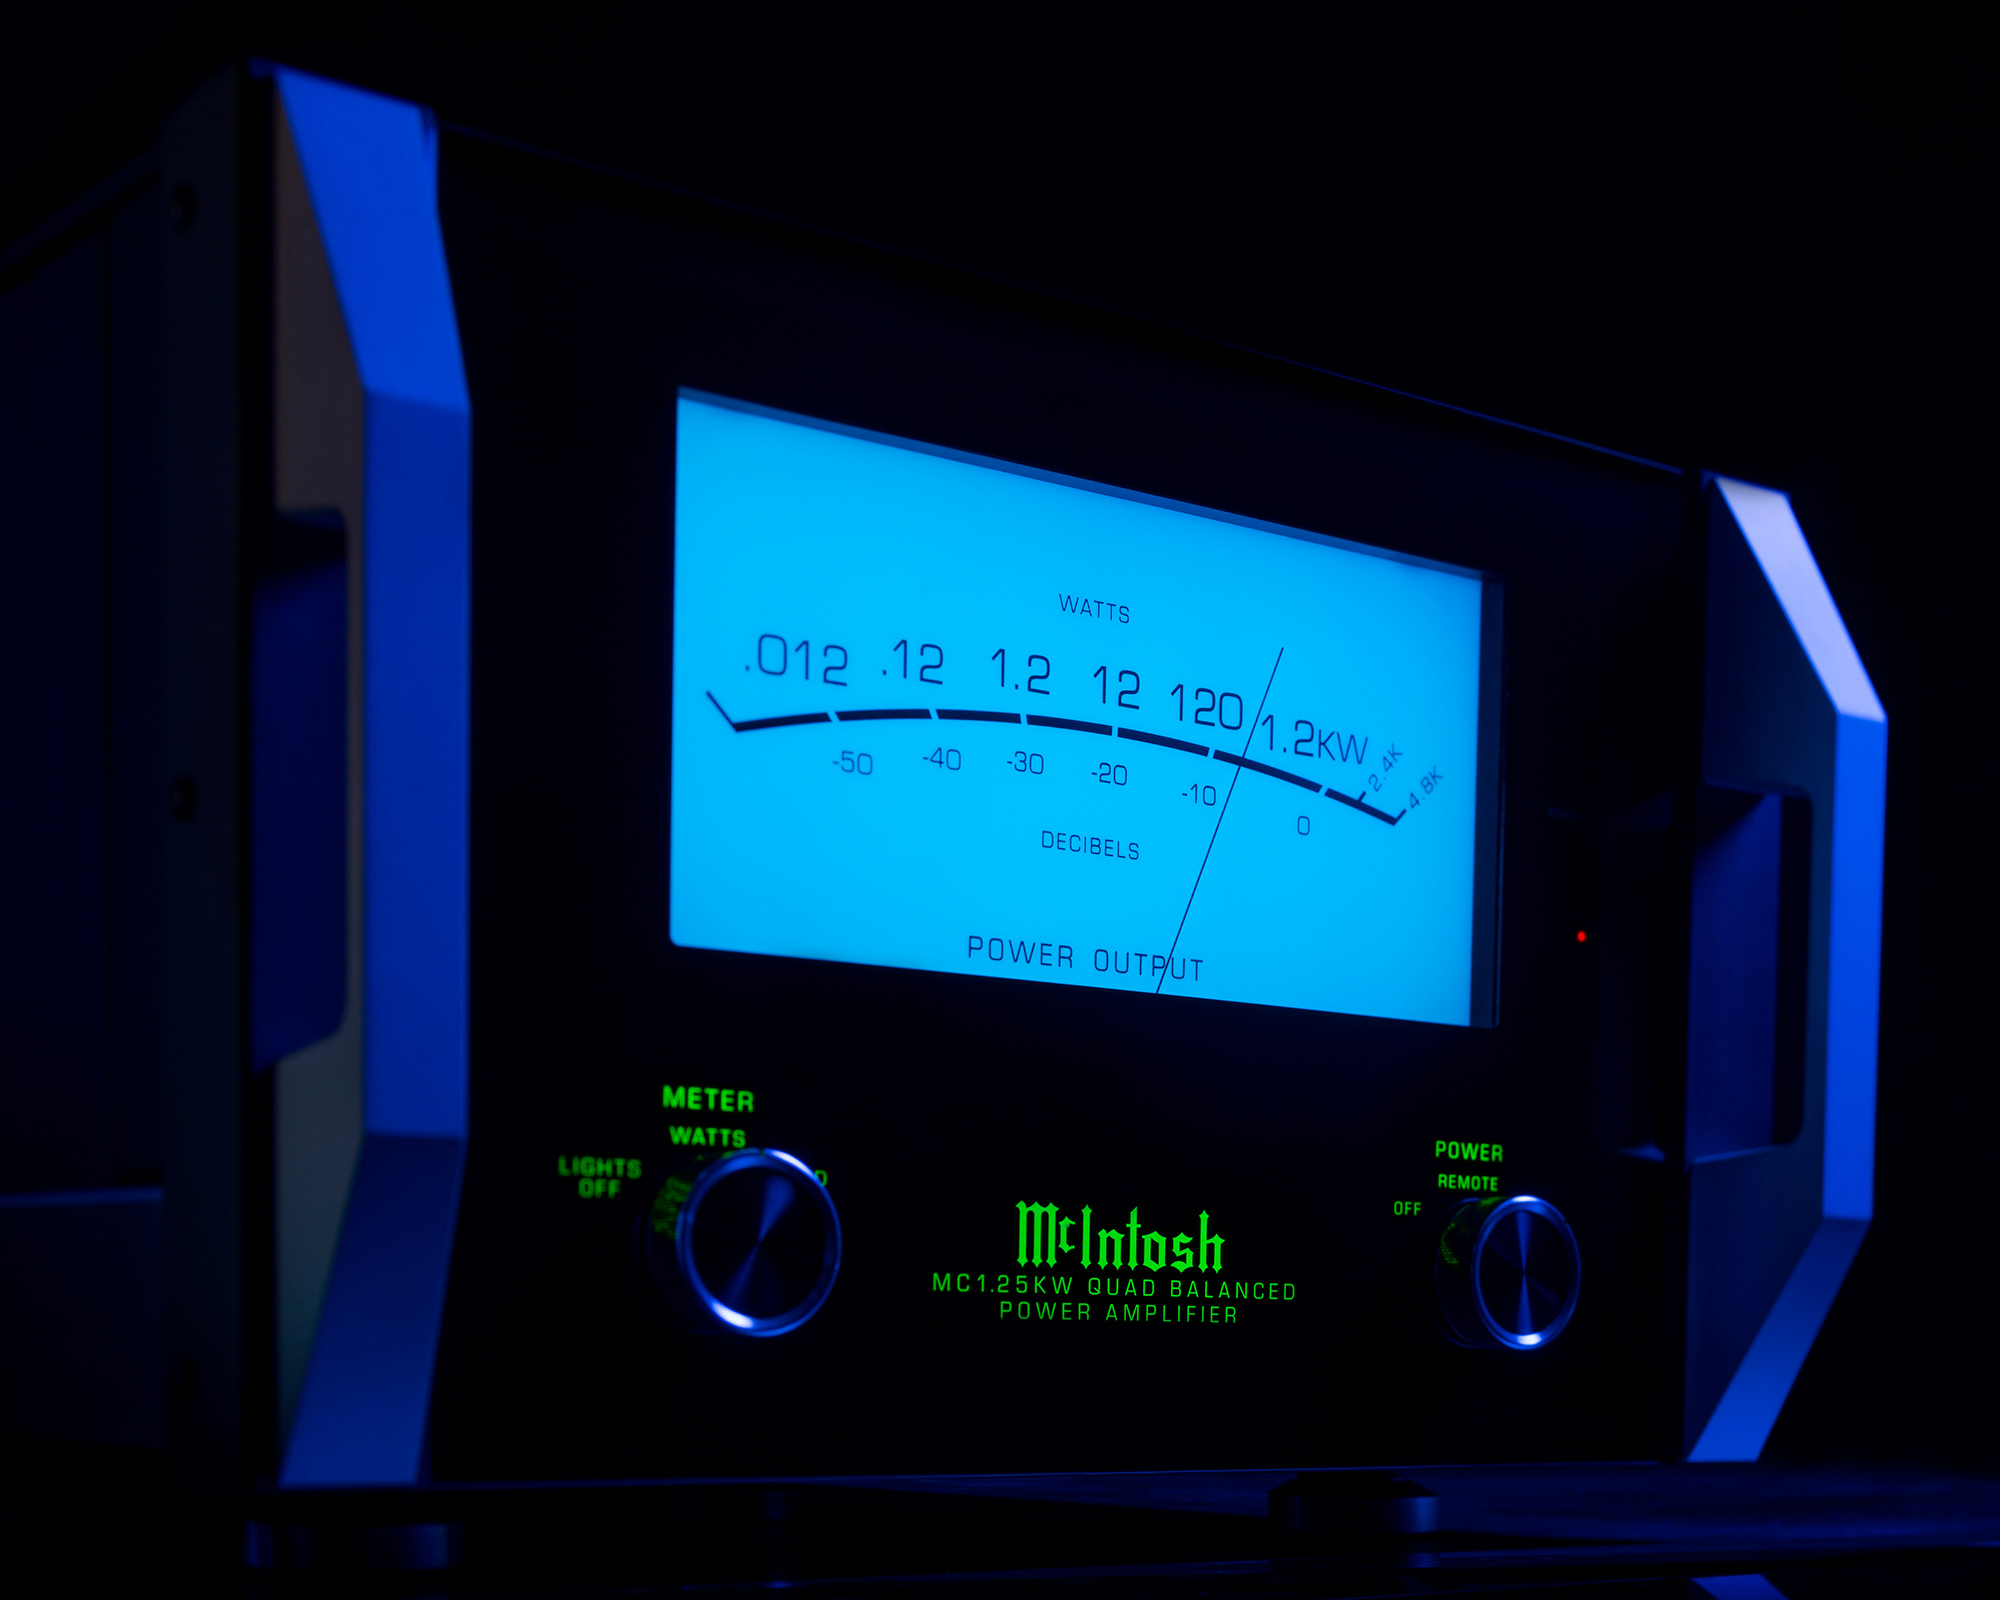 Sale Blu Di Persia Wikipedia : Mcintosh home audio equipment for stereo home theater systems